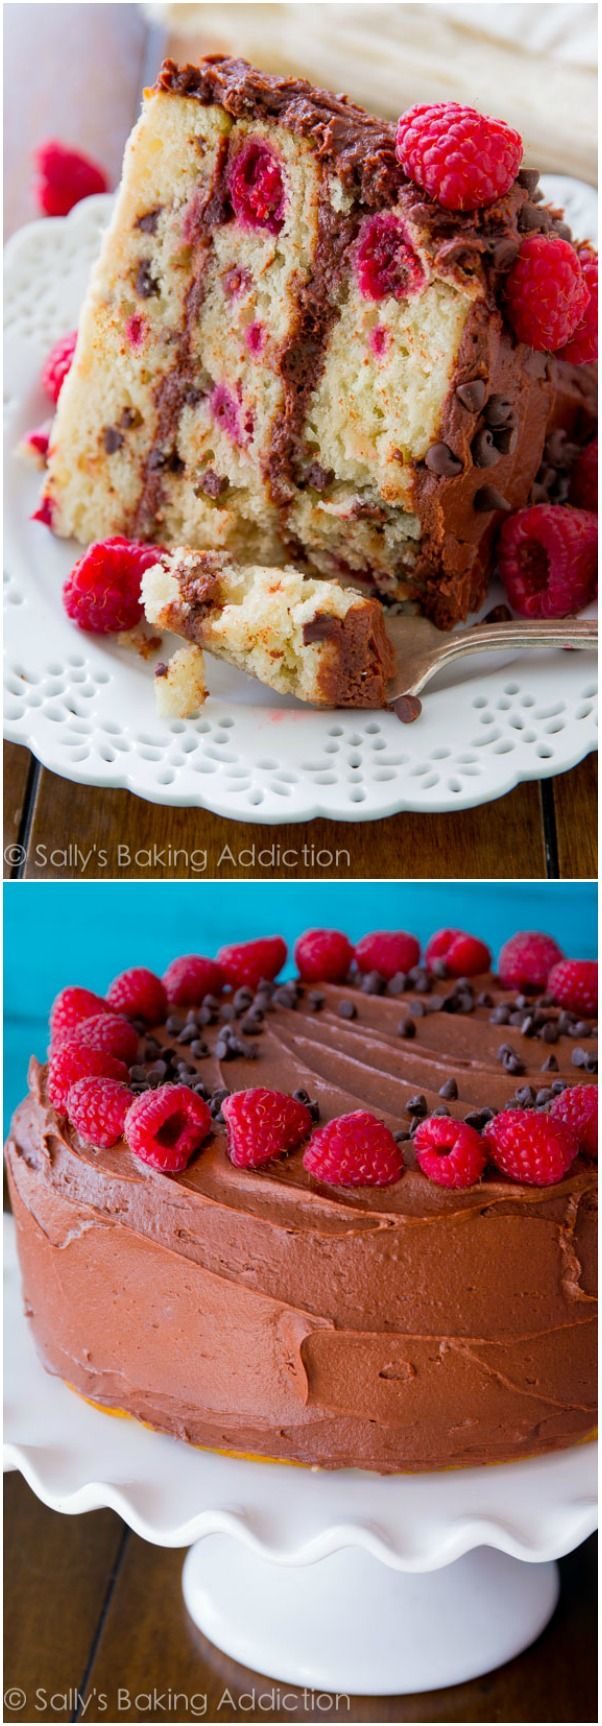 Super-moist chocolate chip layer cake with raspberries and the best chocolate frosting you'll ever make. Trust me!